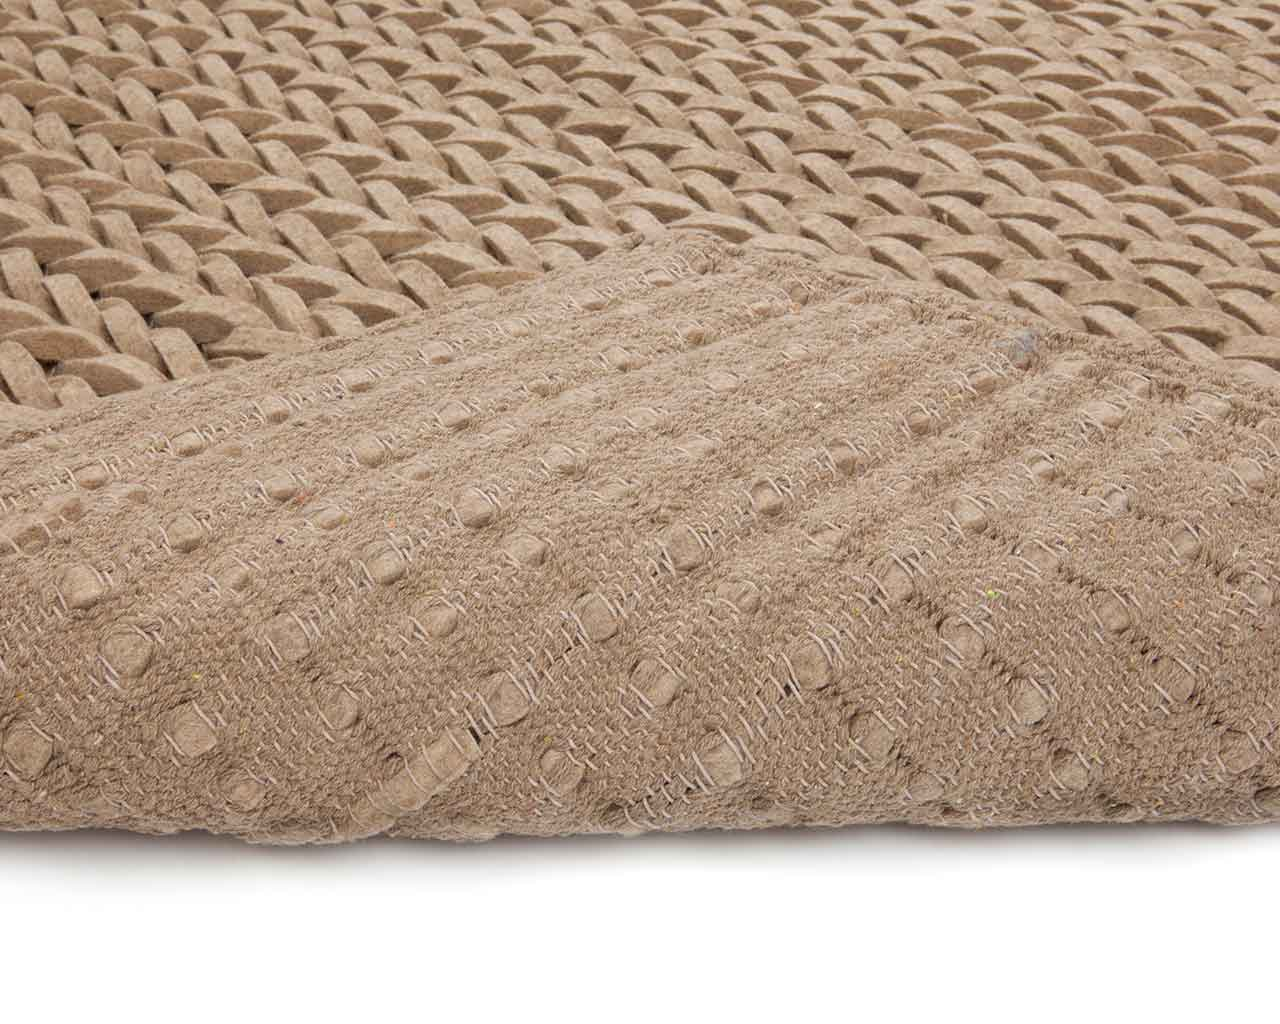 beige brown felted wool carpets 1